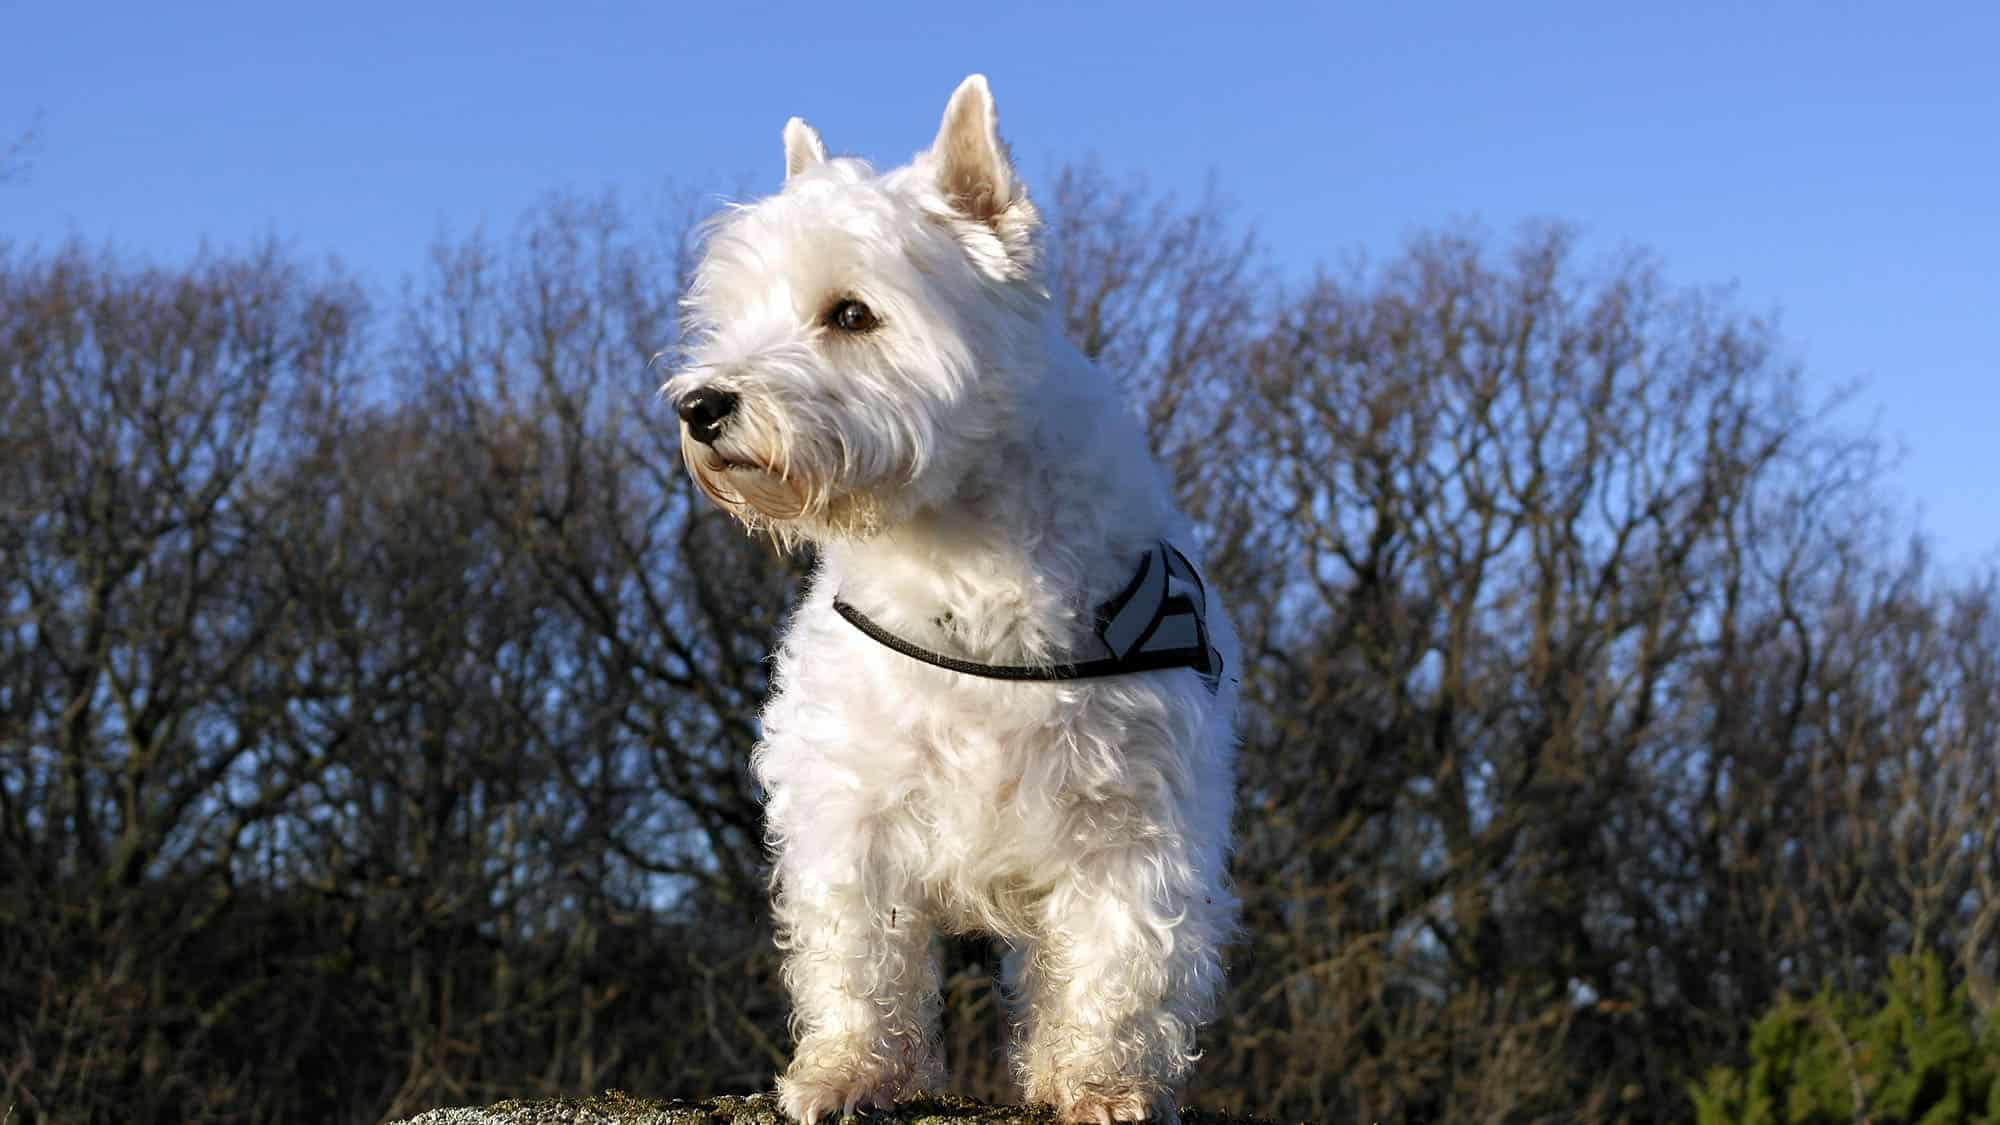 CyberPet - West highland white terrier